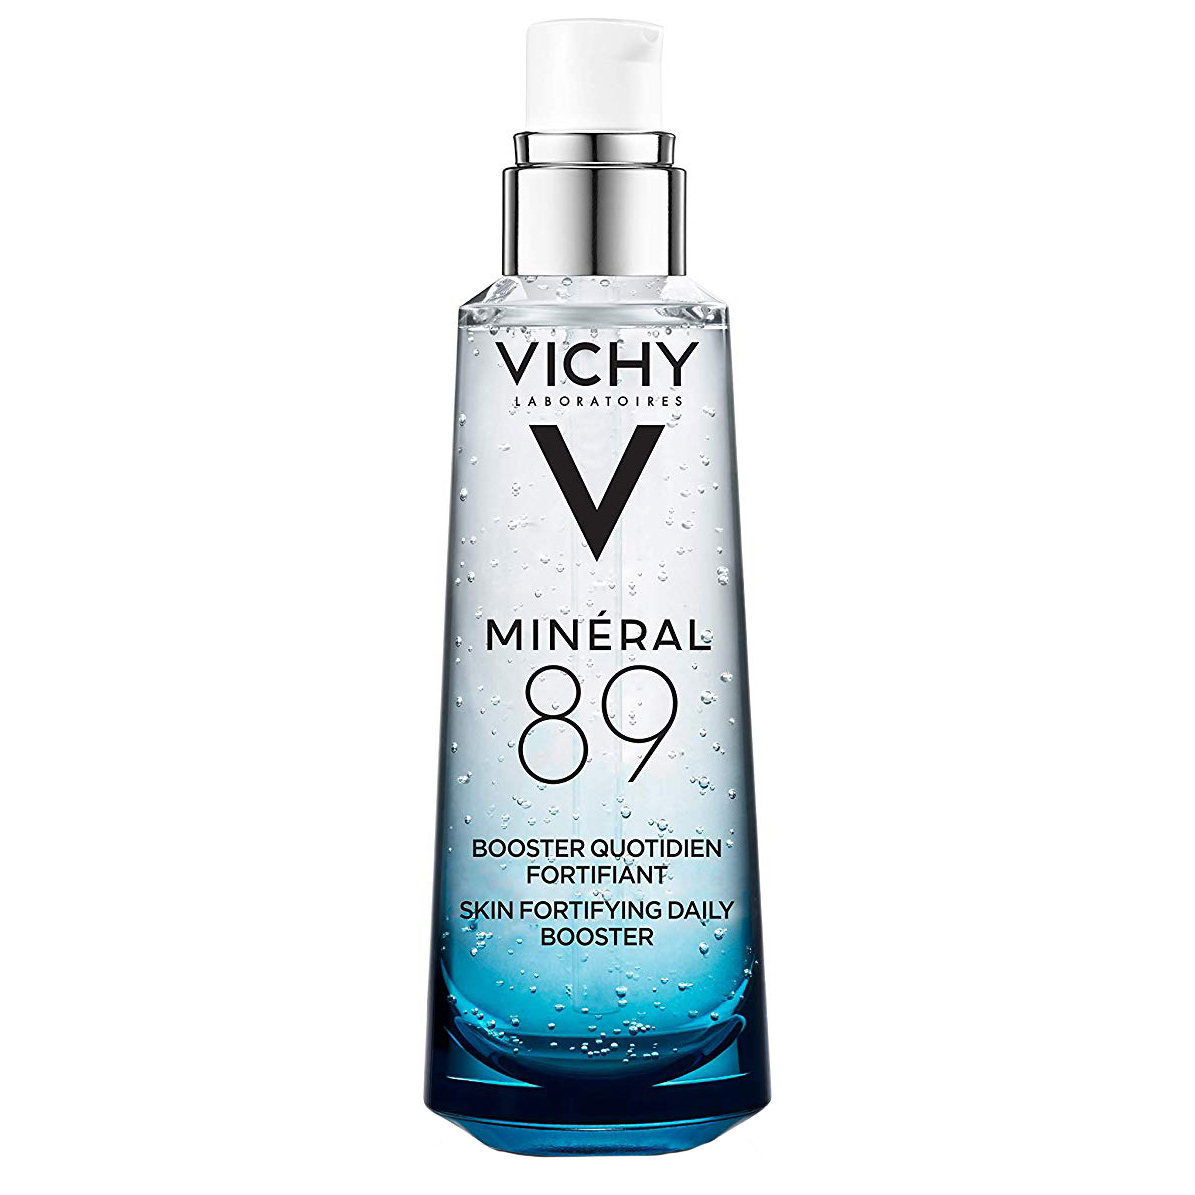 VICHY Mineral 89 Daily Skin Booster Serum and Moisturizer